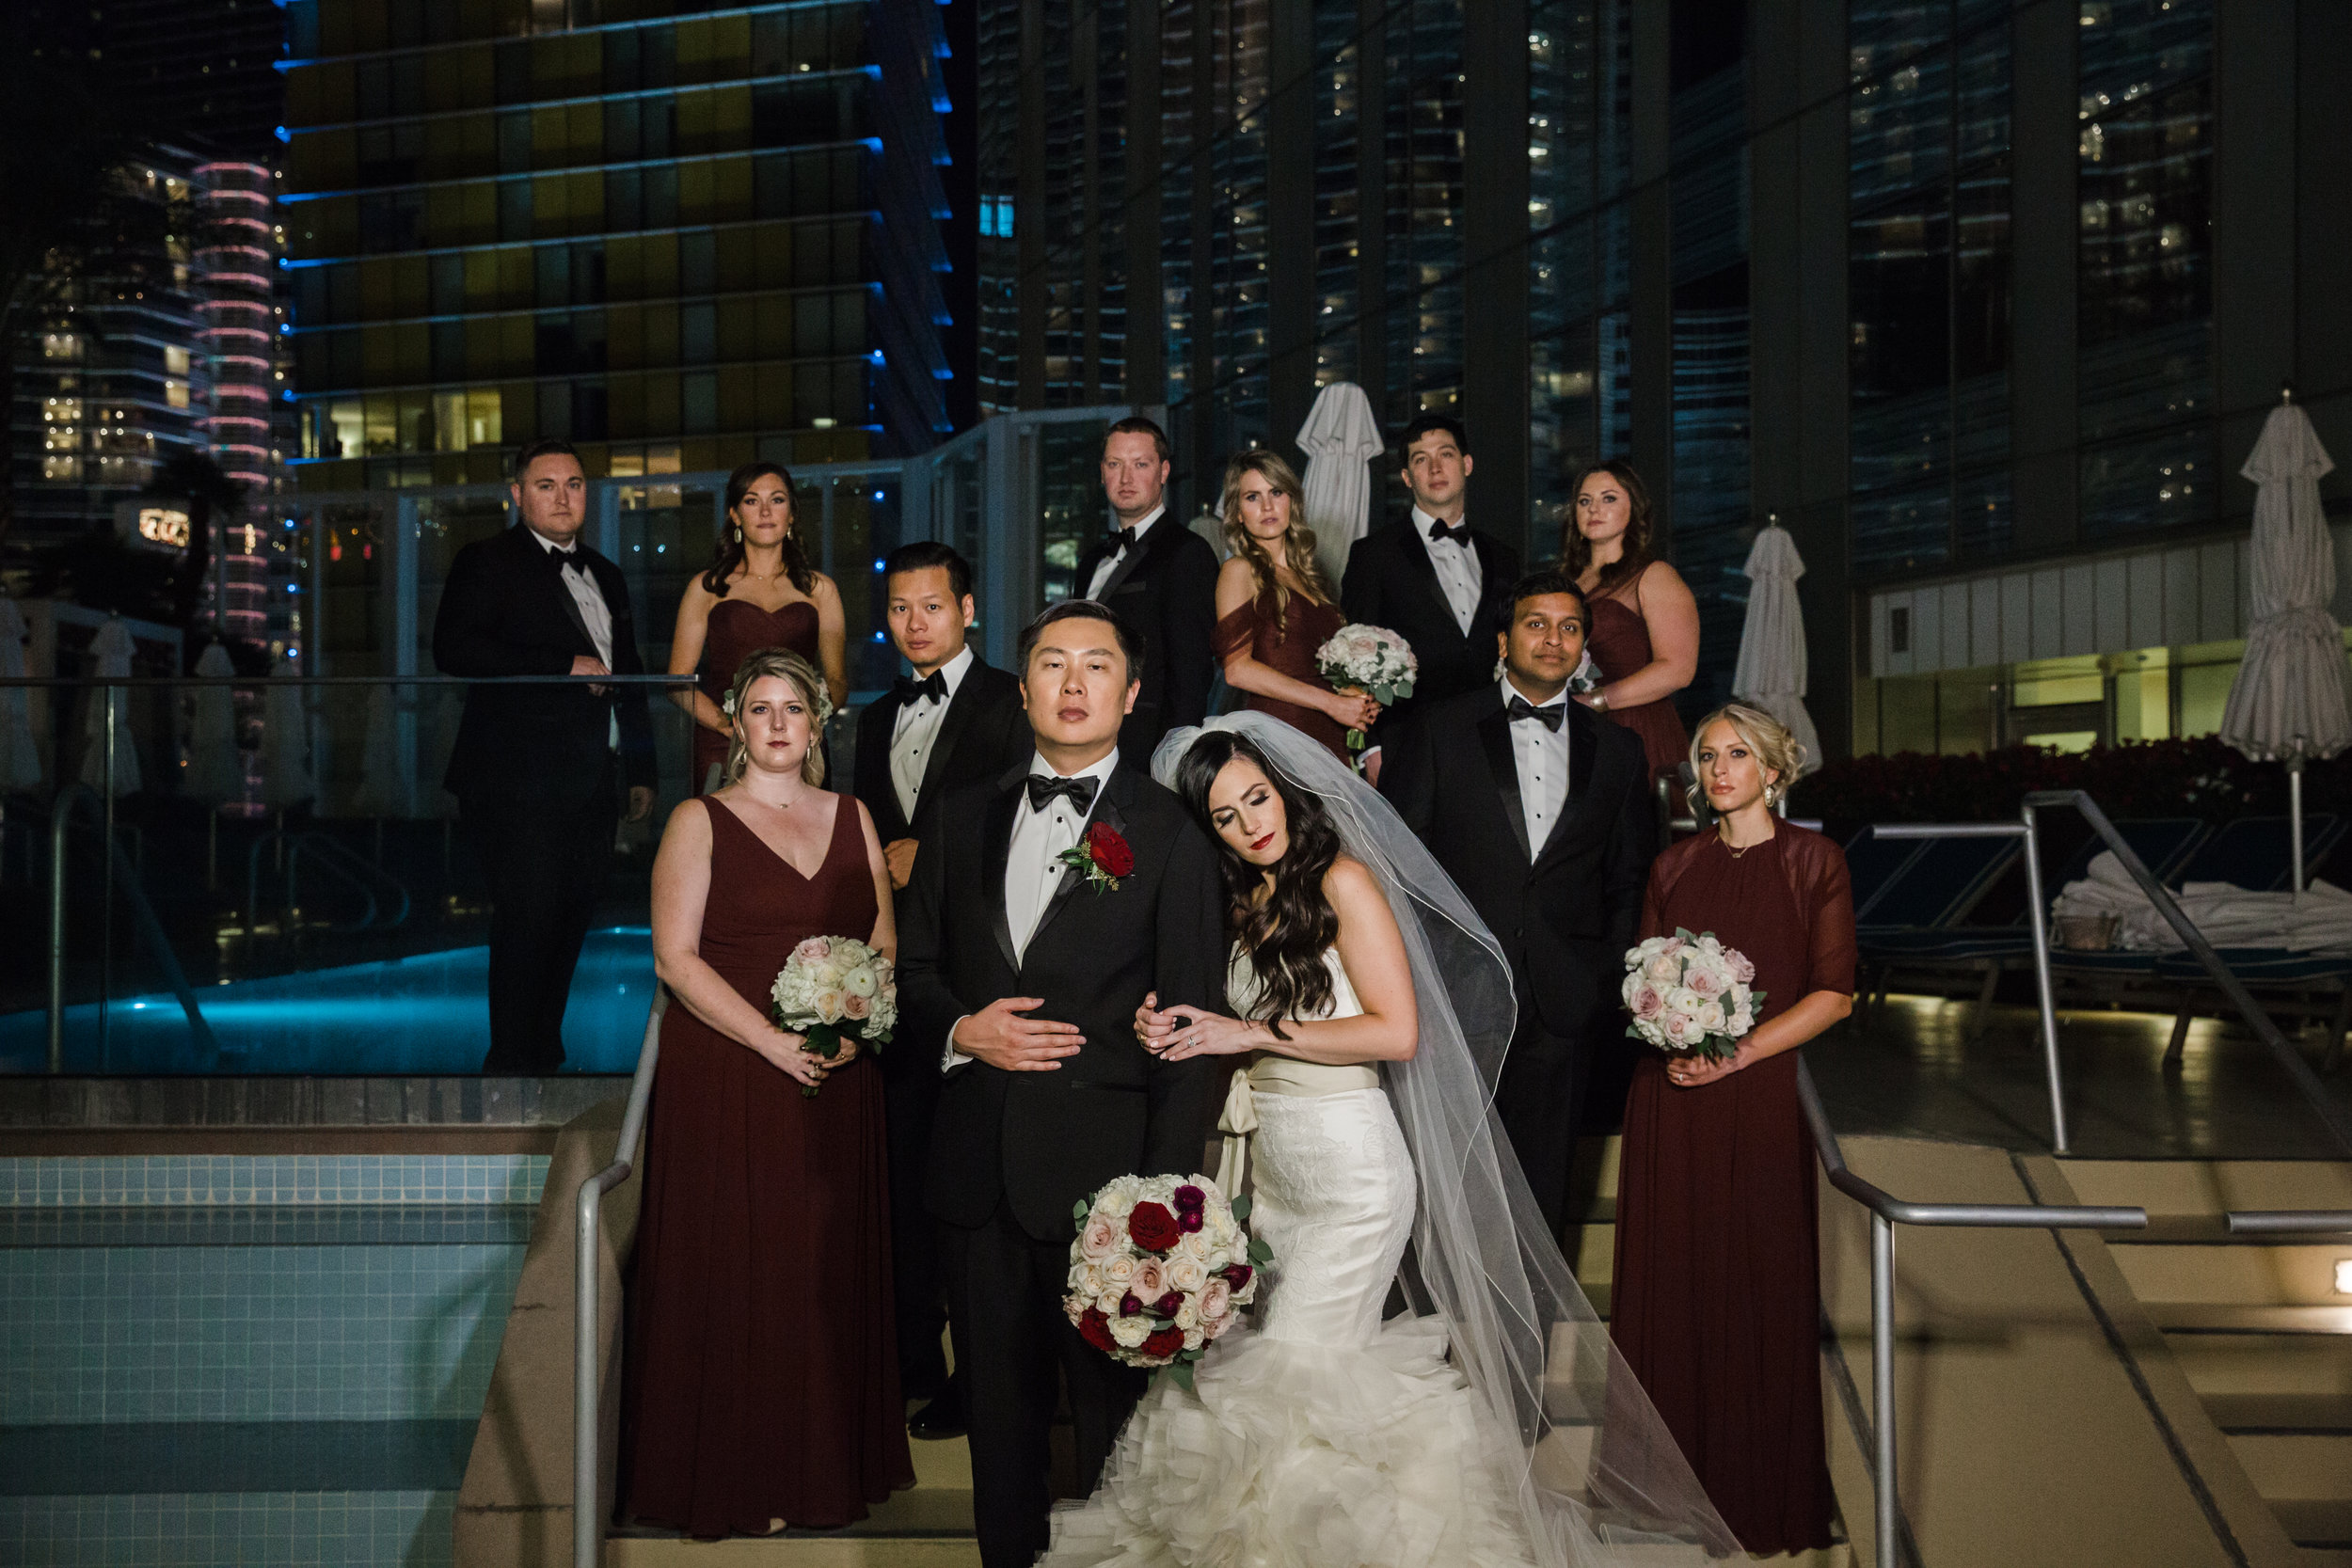 Bridal party portraits on rooftop.Luxury wedding at the Mandarin Oriental with a color scheme of white, blush, and pops of wine red produced by Las Vegas Wedding Planner Andrea Eppolito with photos by Stephen Salazar Photography.